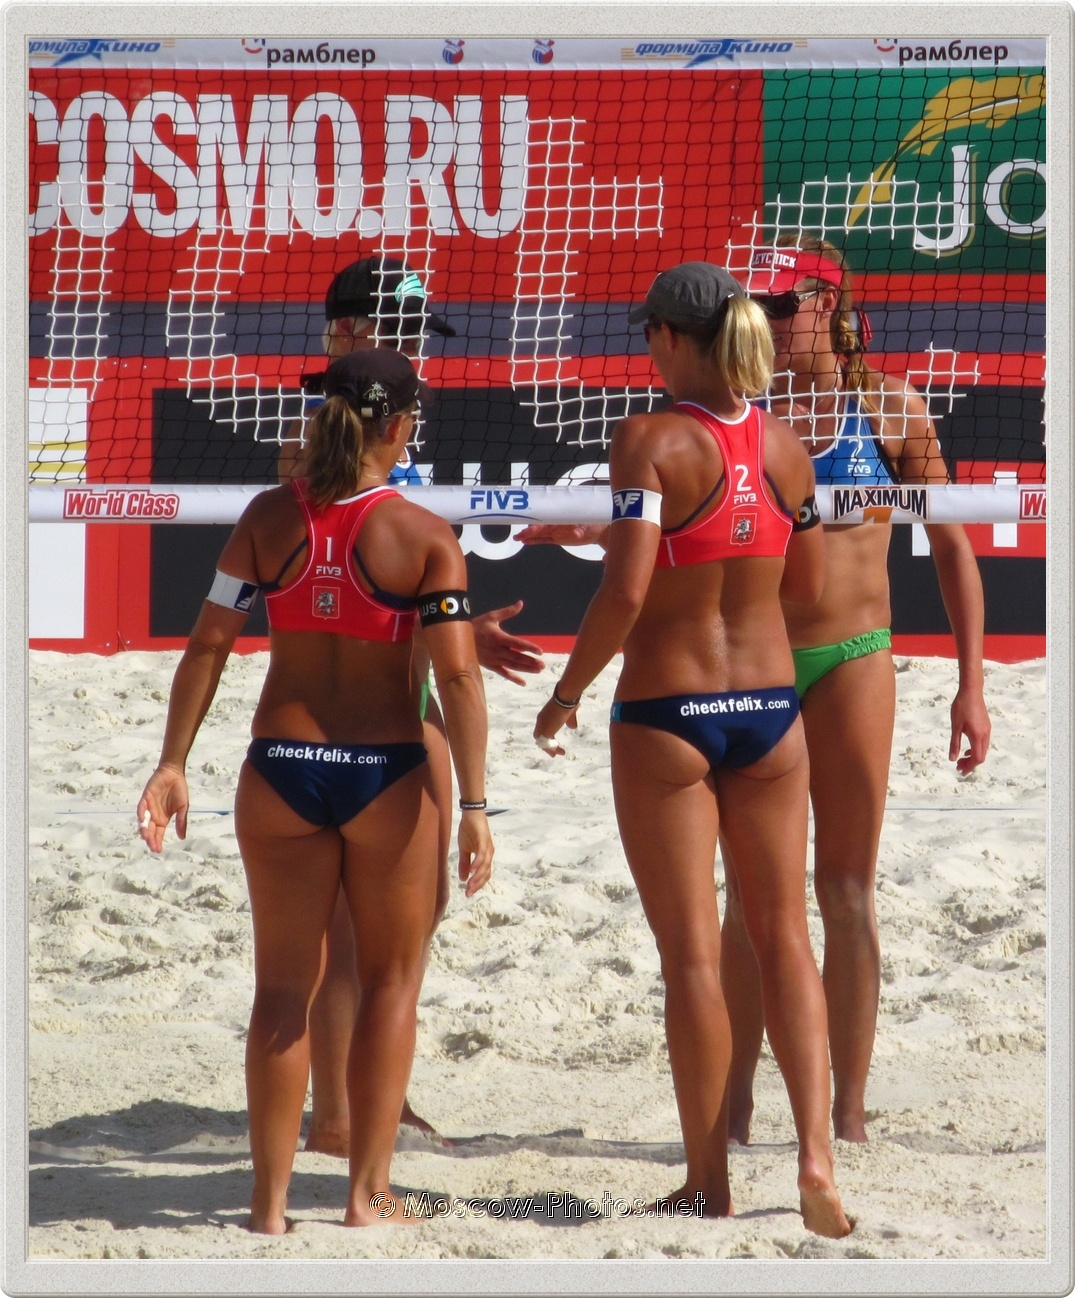 Beach volleyball players after the match